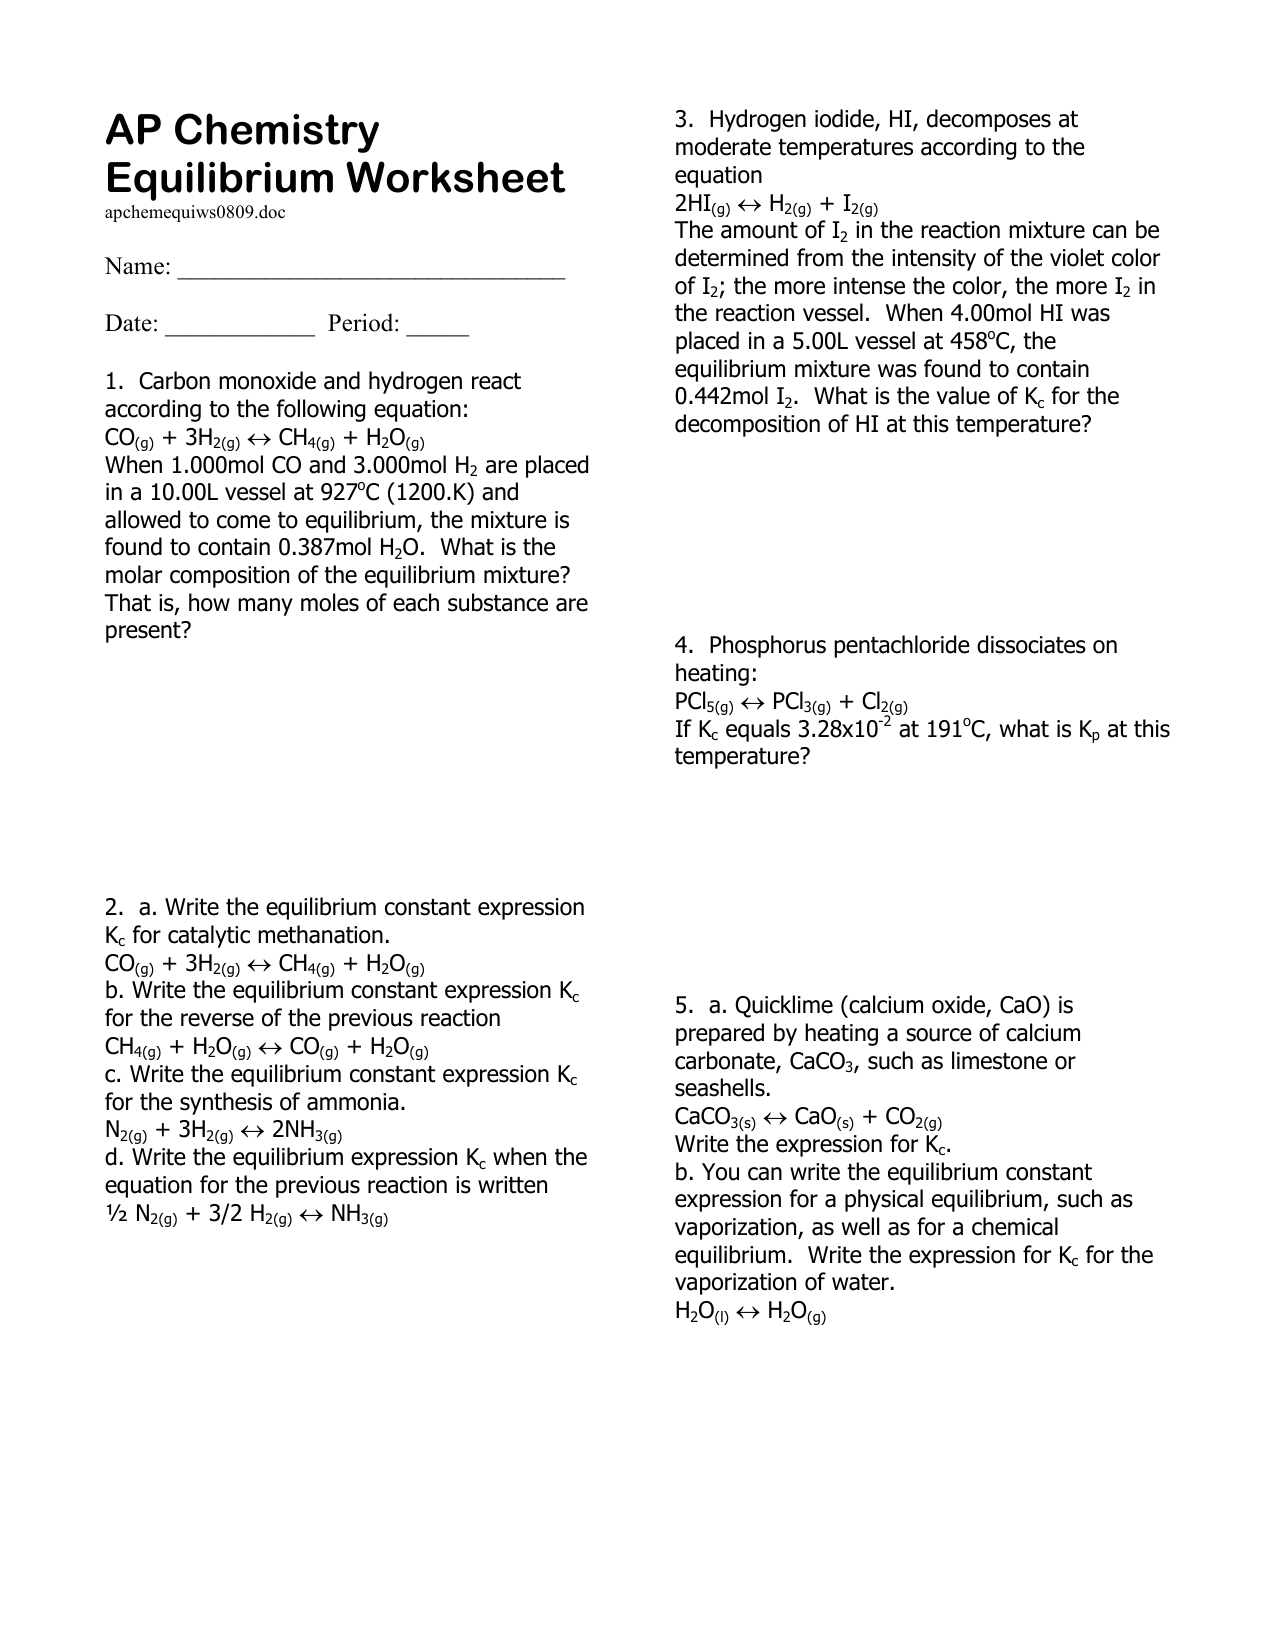 Worksheets Chemical Equilibrium Worksheet pictures equilibrium constant worksheet toribeedesign 008681433 1 058f1b2c64a639a1454d42e3f8bbd858